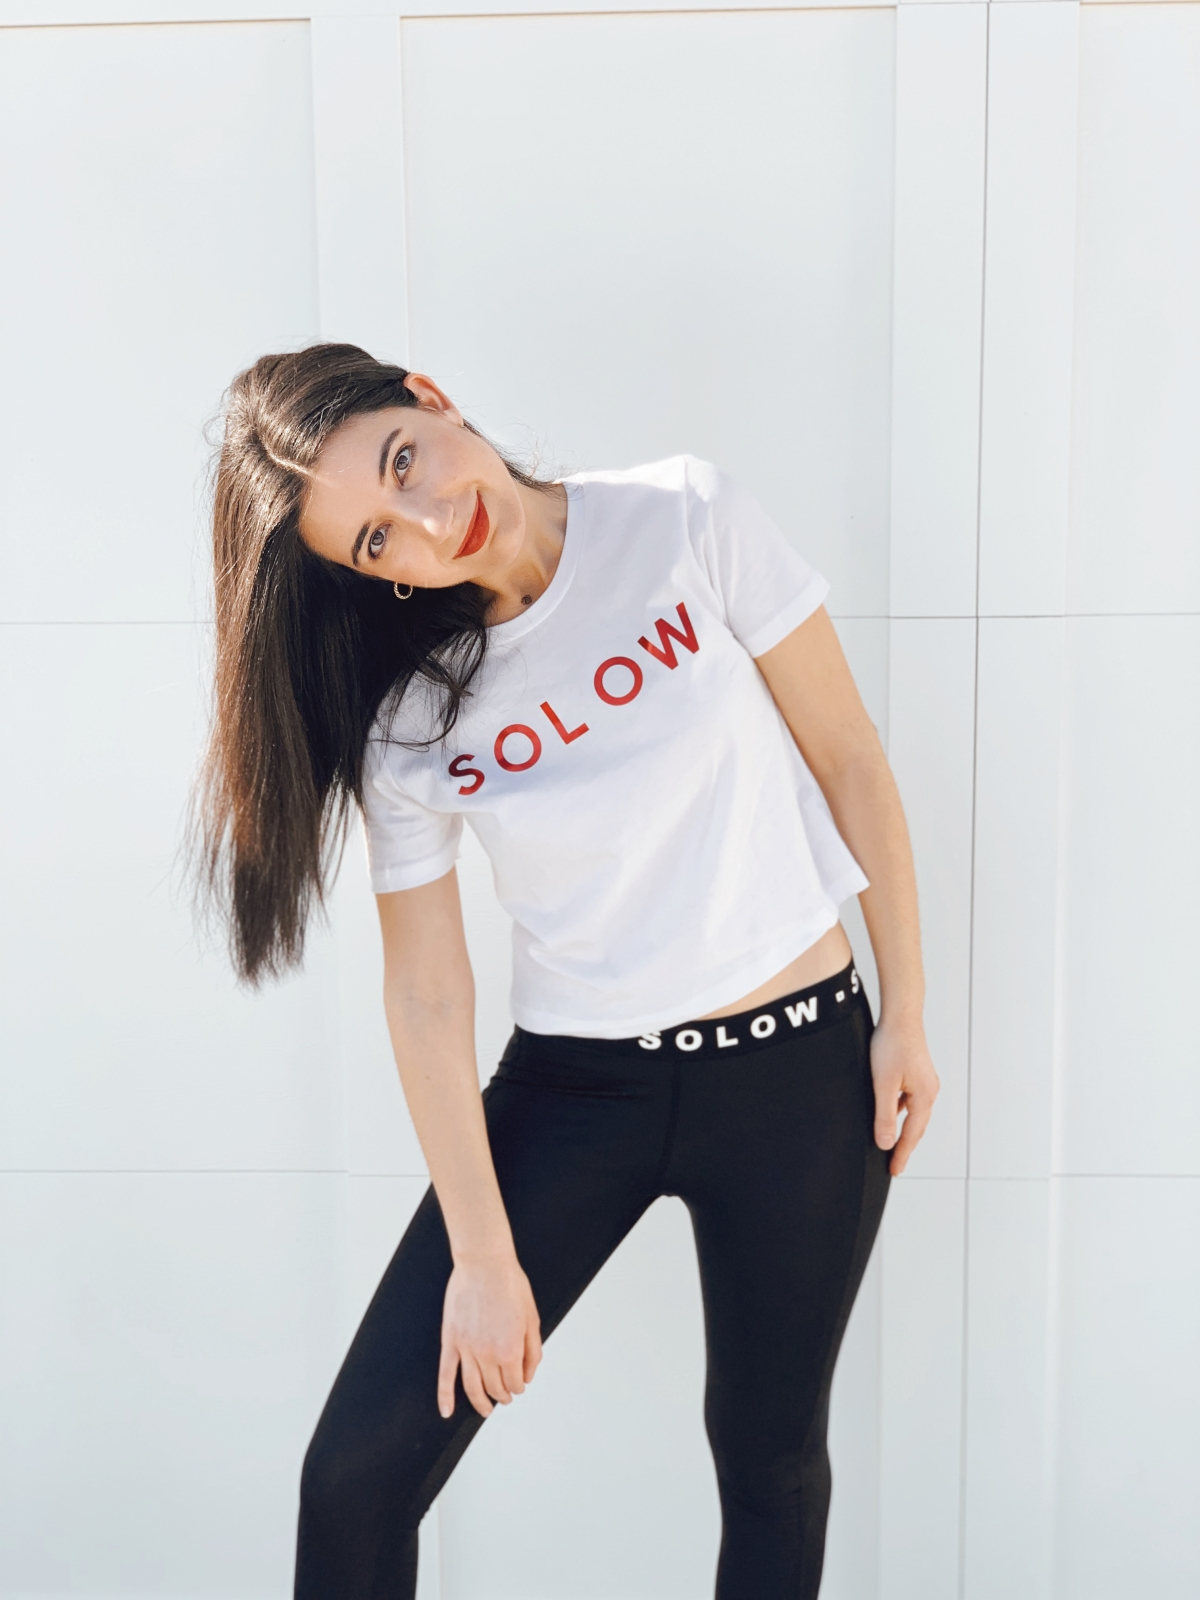 activewear, athleisure, loungewear, luxury loungewear, lookbook, athletic, fashion editorial, SOLOW, leggings, T-shirt, fashion blogger, style diary, sporty fashion, gym outfit, ootd, outfit of the day, at home, at home workout, workout wear, what I wore, spring fashion, 2020 fashion, APL, Daniella Clarke, Gilby Clarke, Frankie Clarke